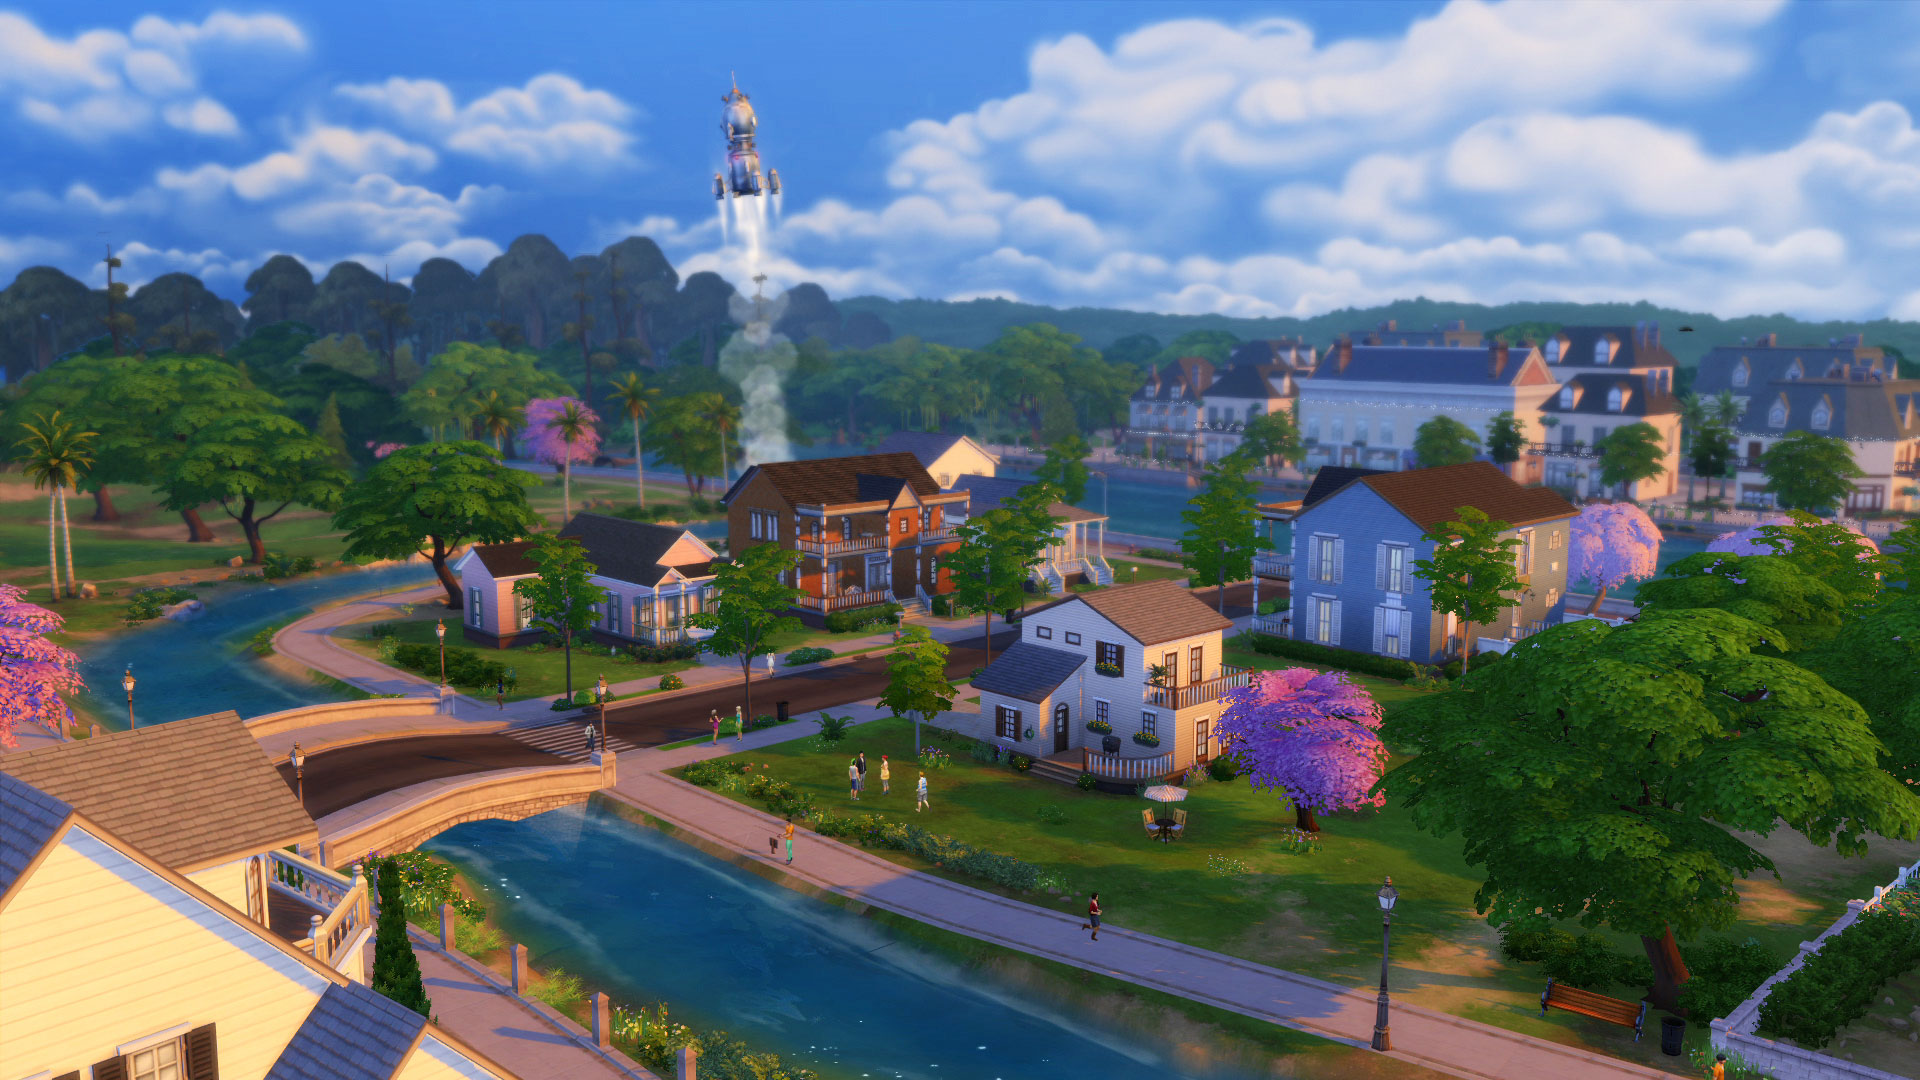 The Sims 4 officially announced for Xbox One, PS4